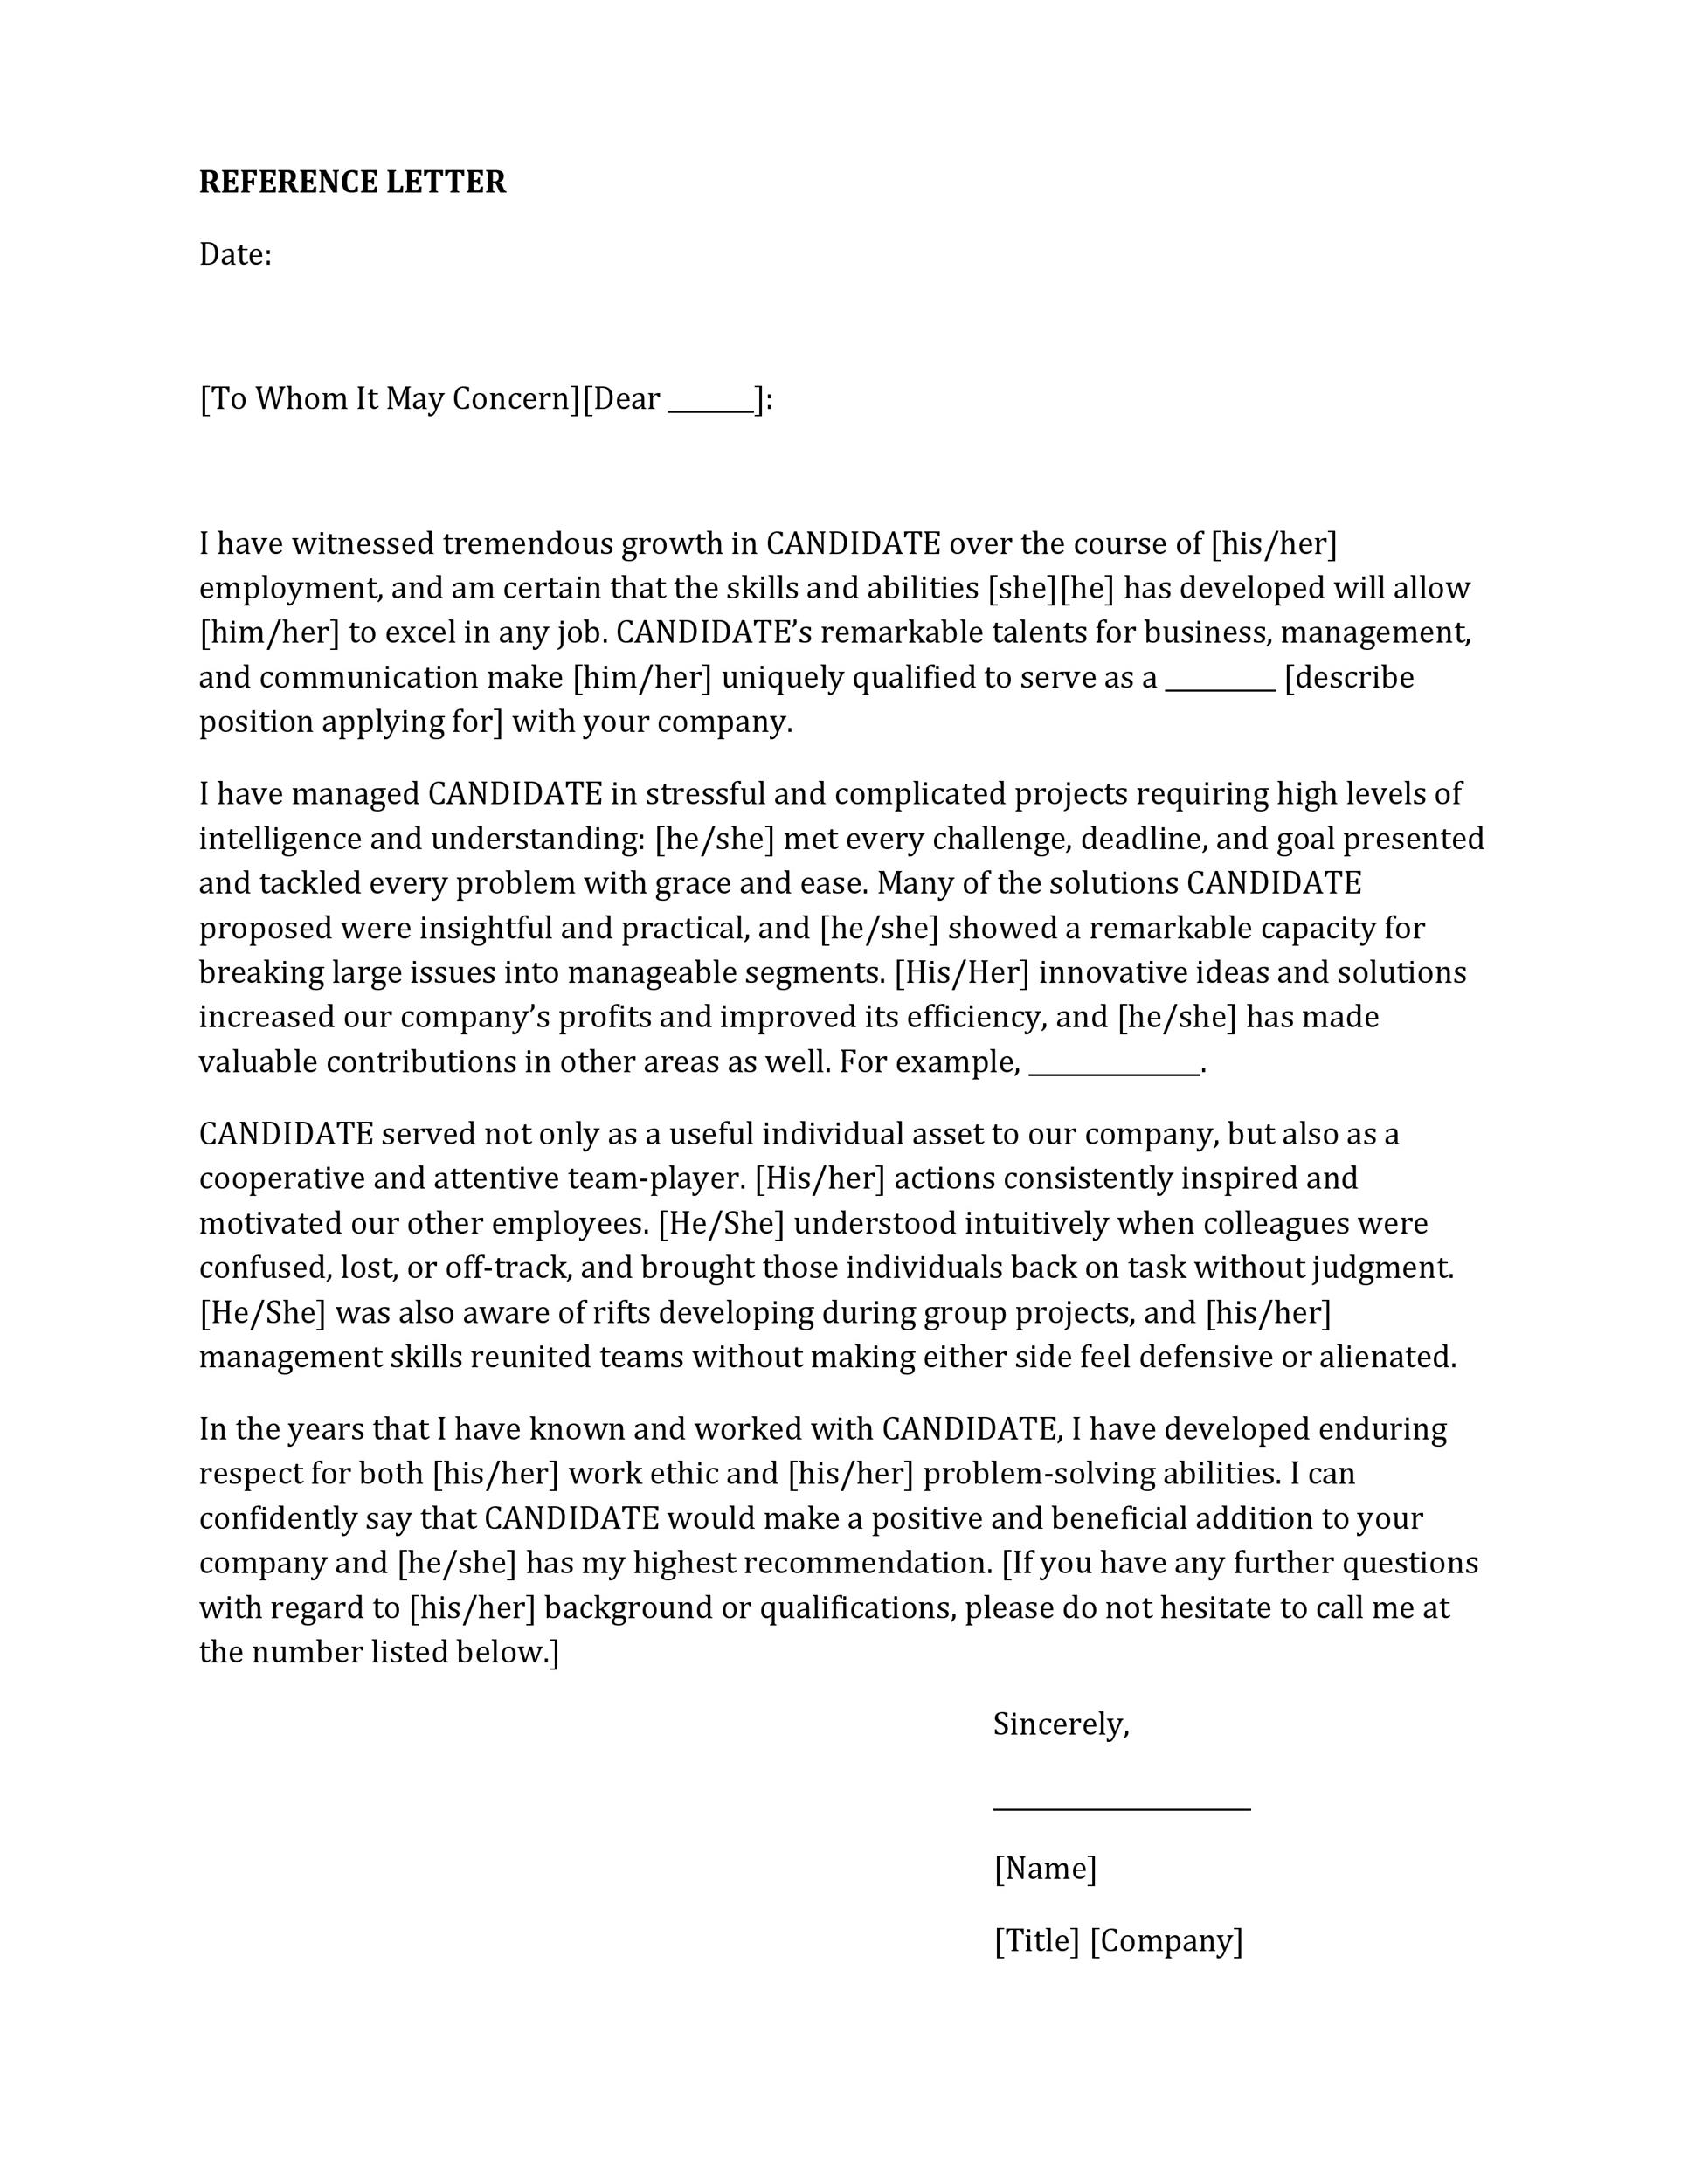 Wonderful Printable Reference Letter 01 Ideas Employment Character Reference Letter